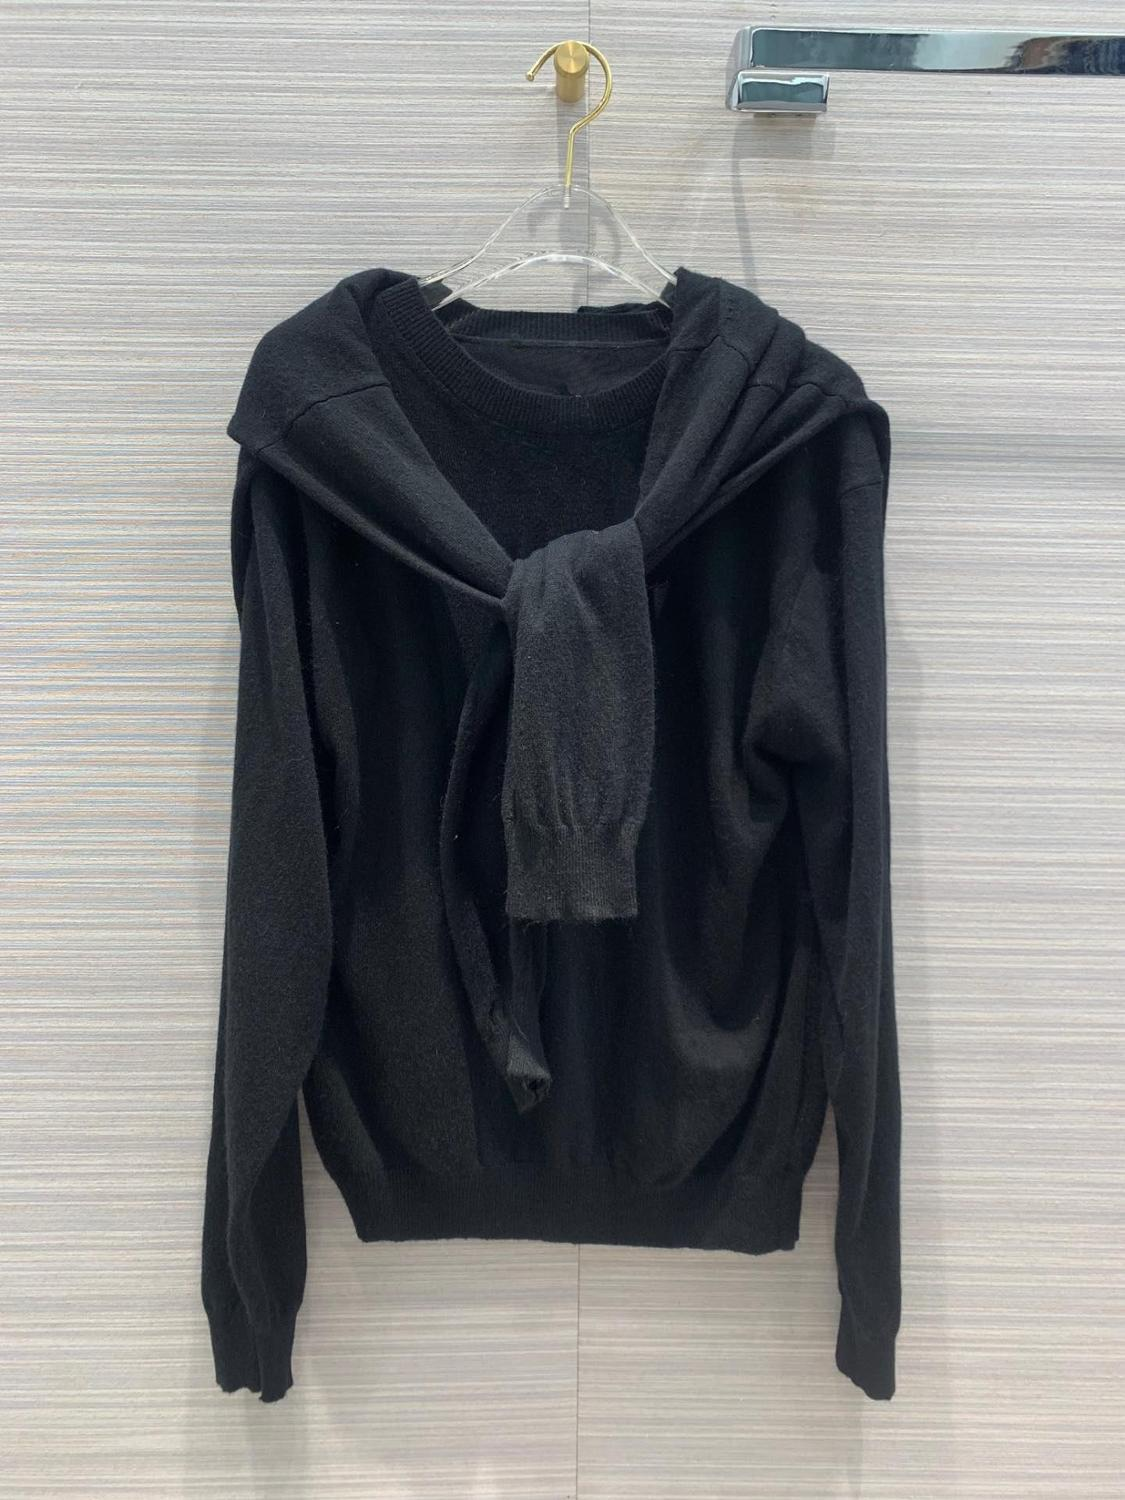 2019 new ladies fashion long sleeved sexy fake two piece stitching sweater 0713